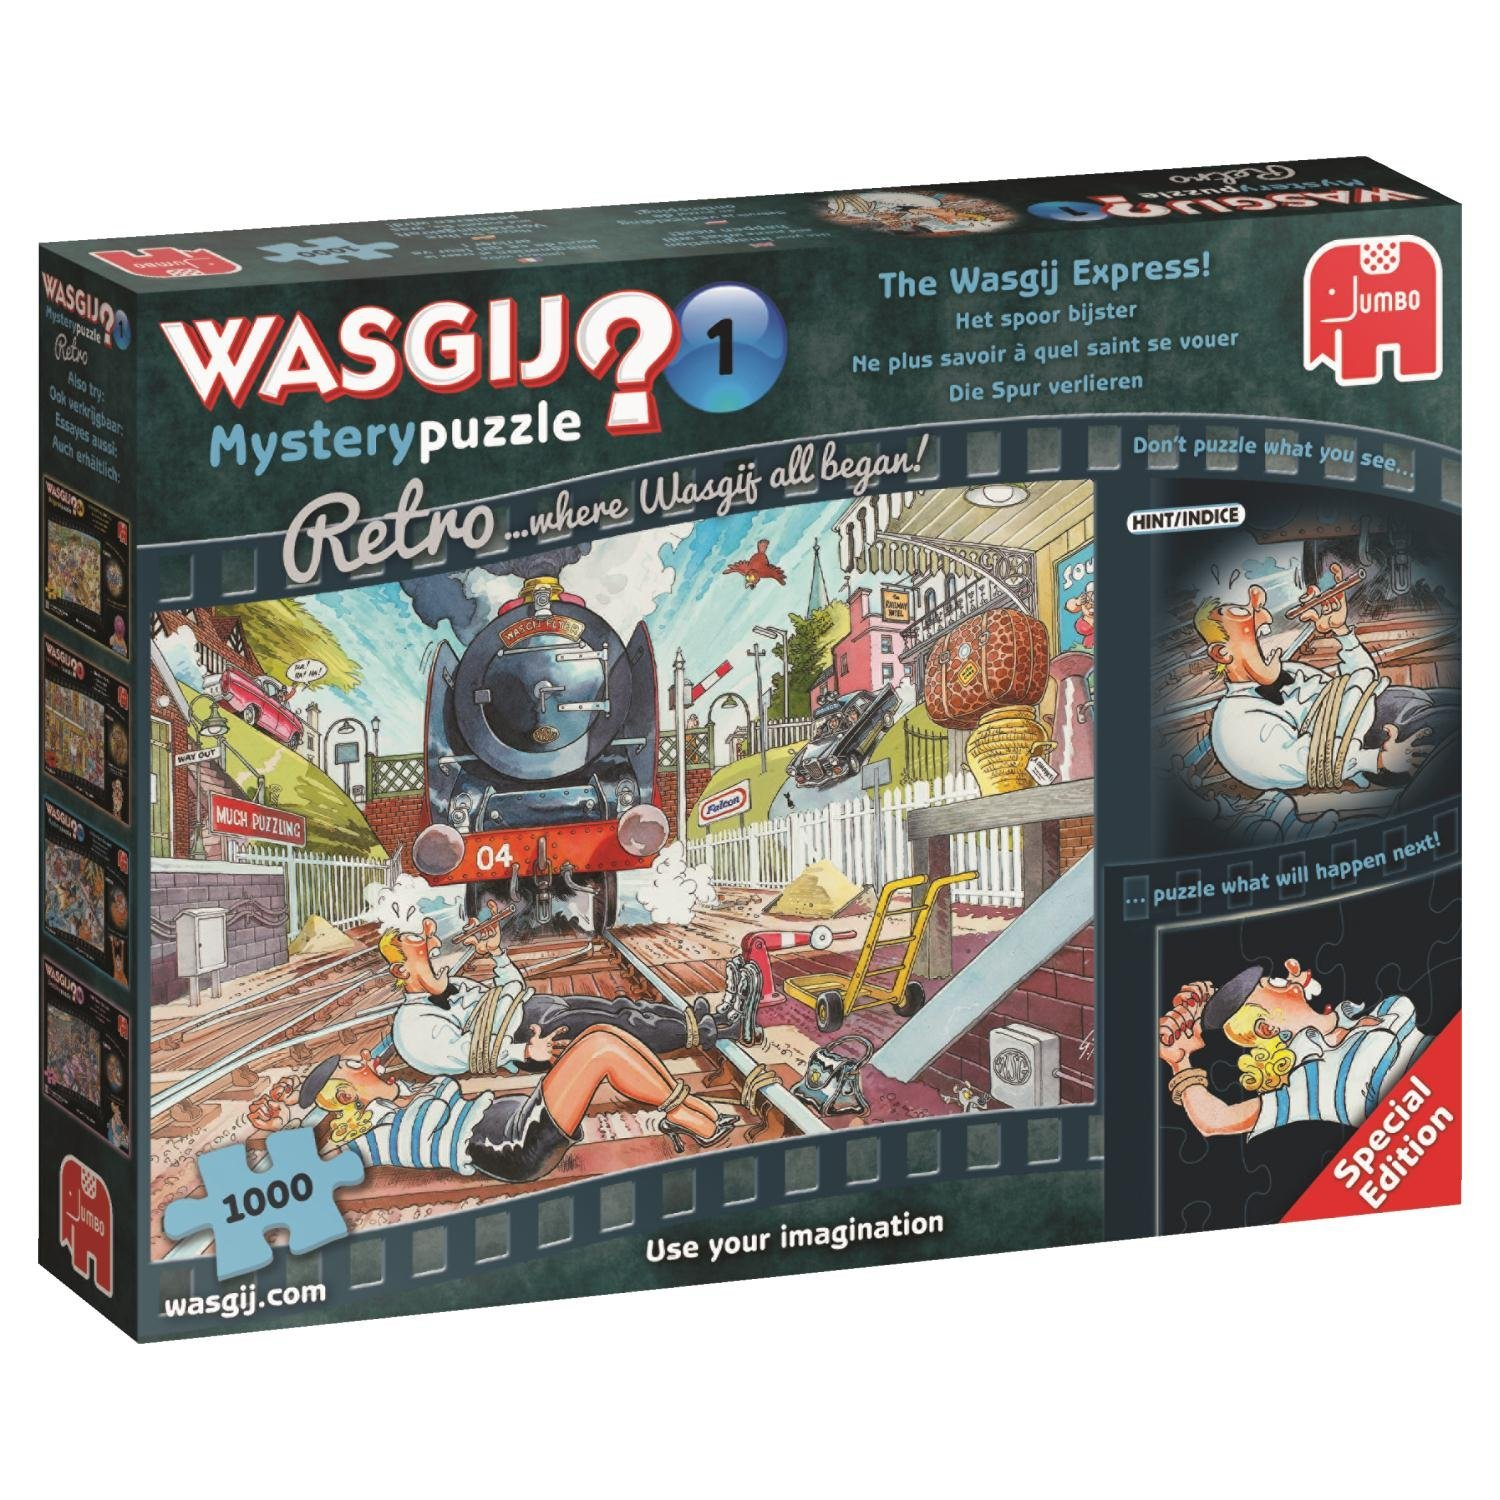 Wasgij Retro Mystery 1, The Express! 1000 Pce, Jigsaw Puzzle